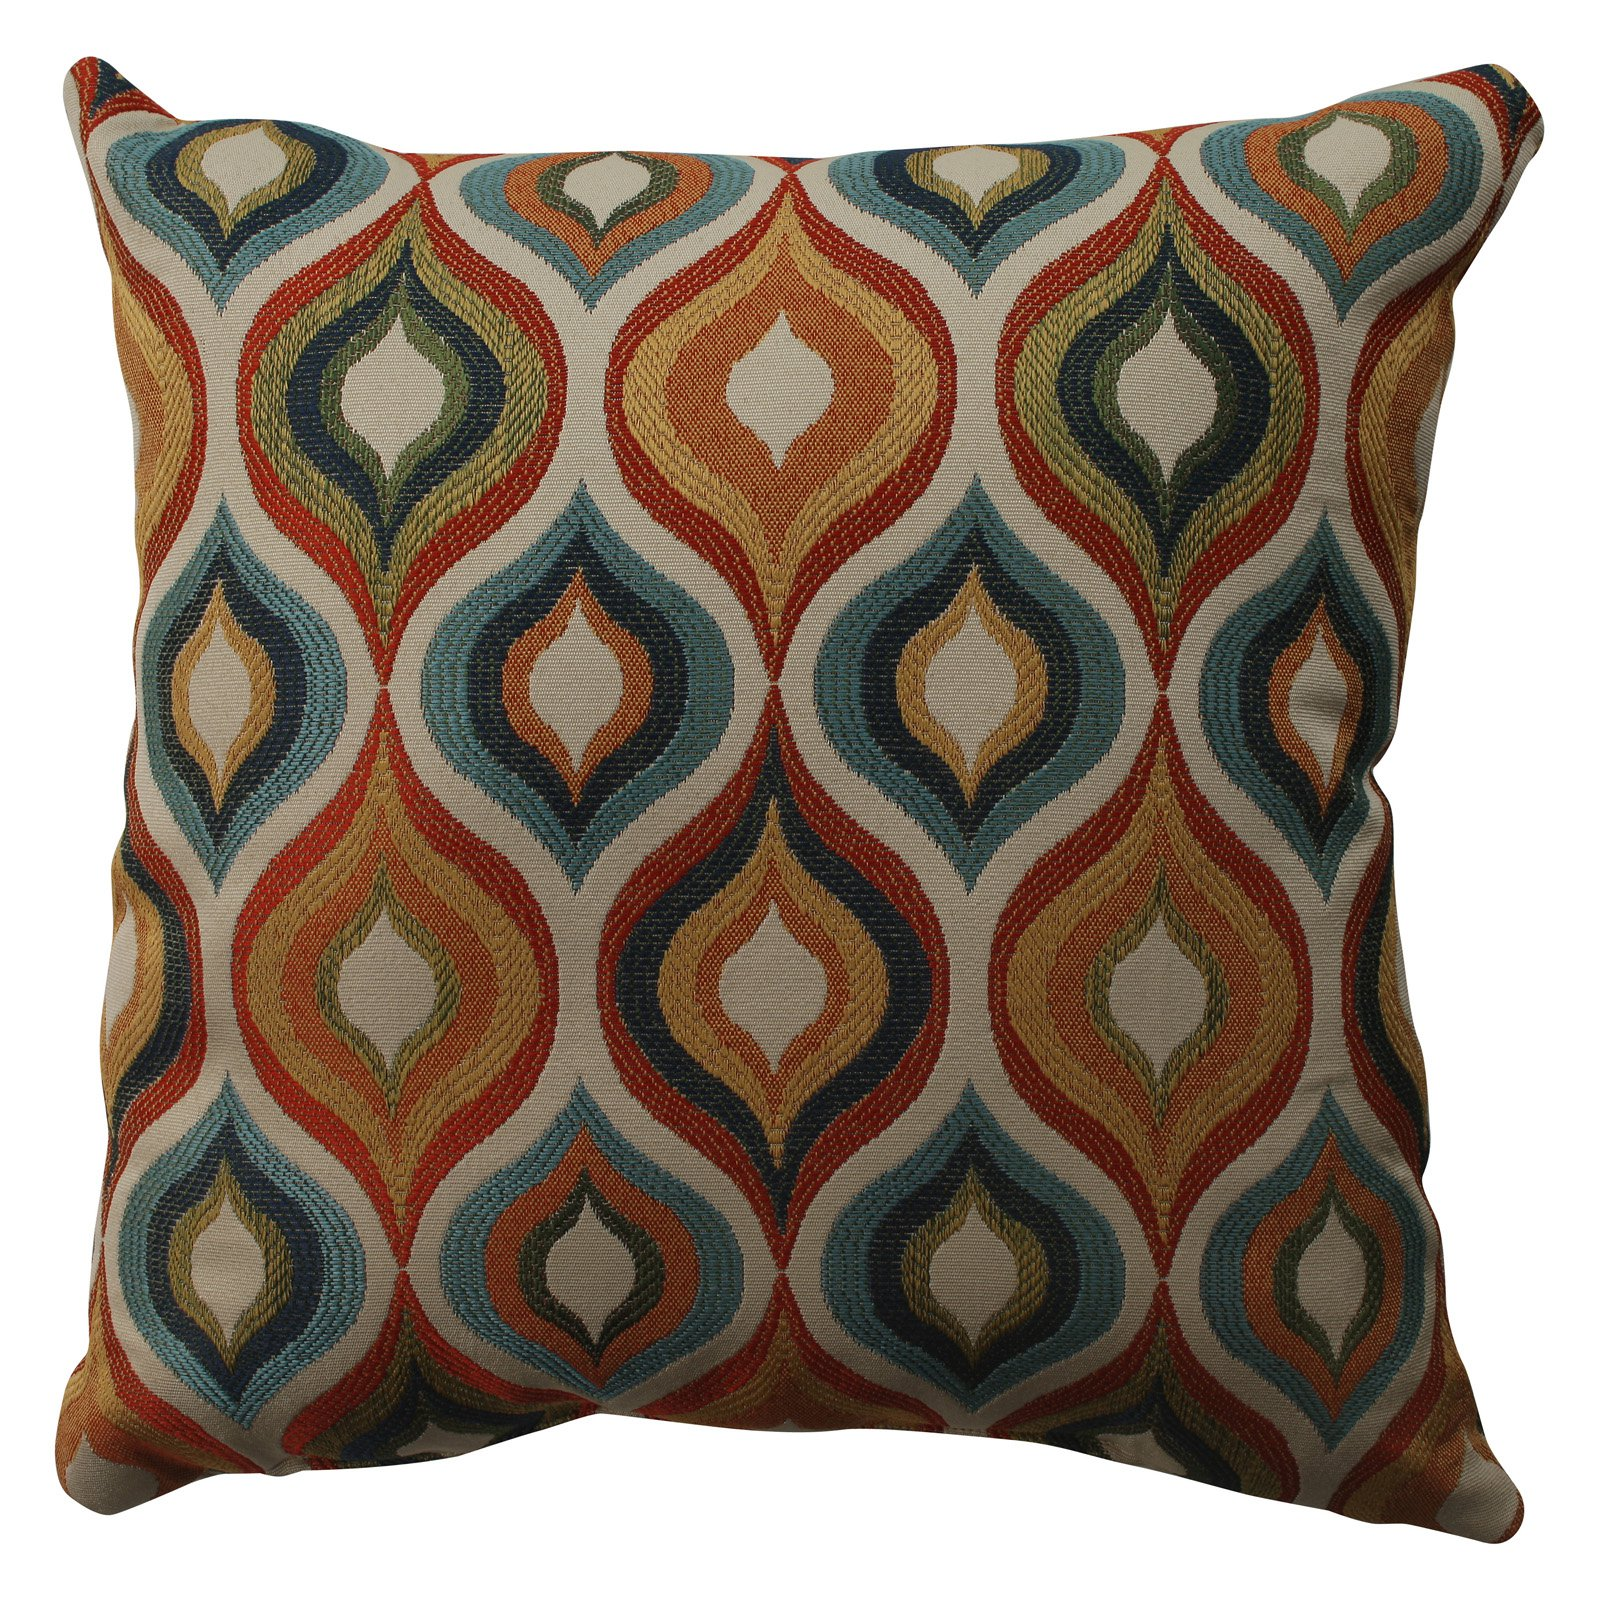 Pillow Perfect Flicker Jewel Throw Pillow by Pillow Perfect